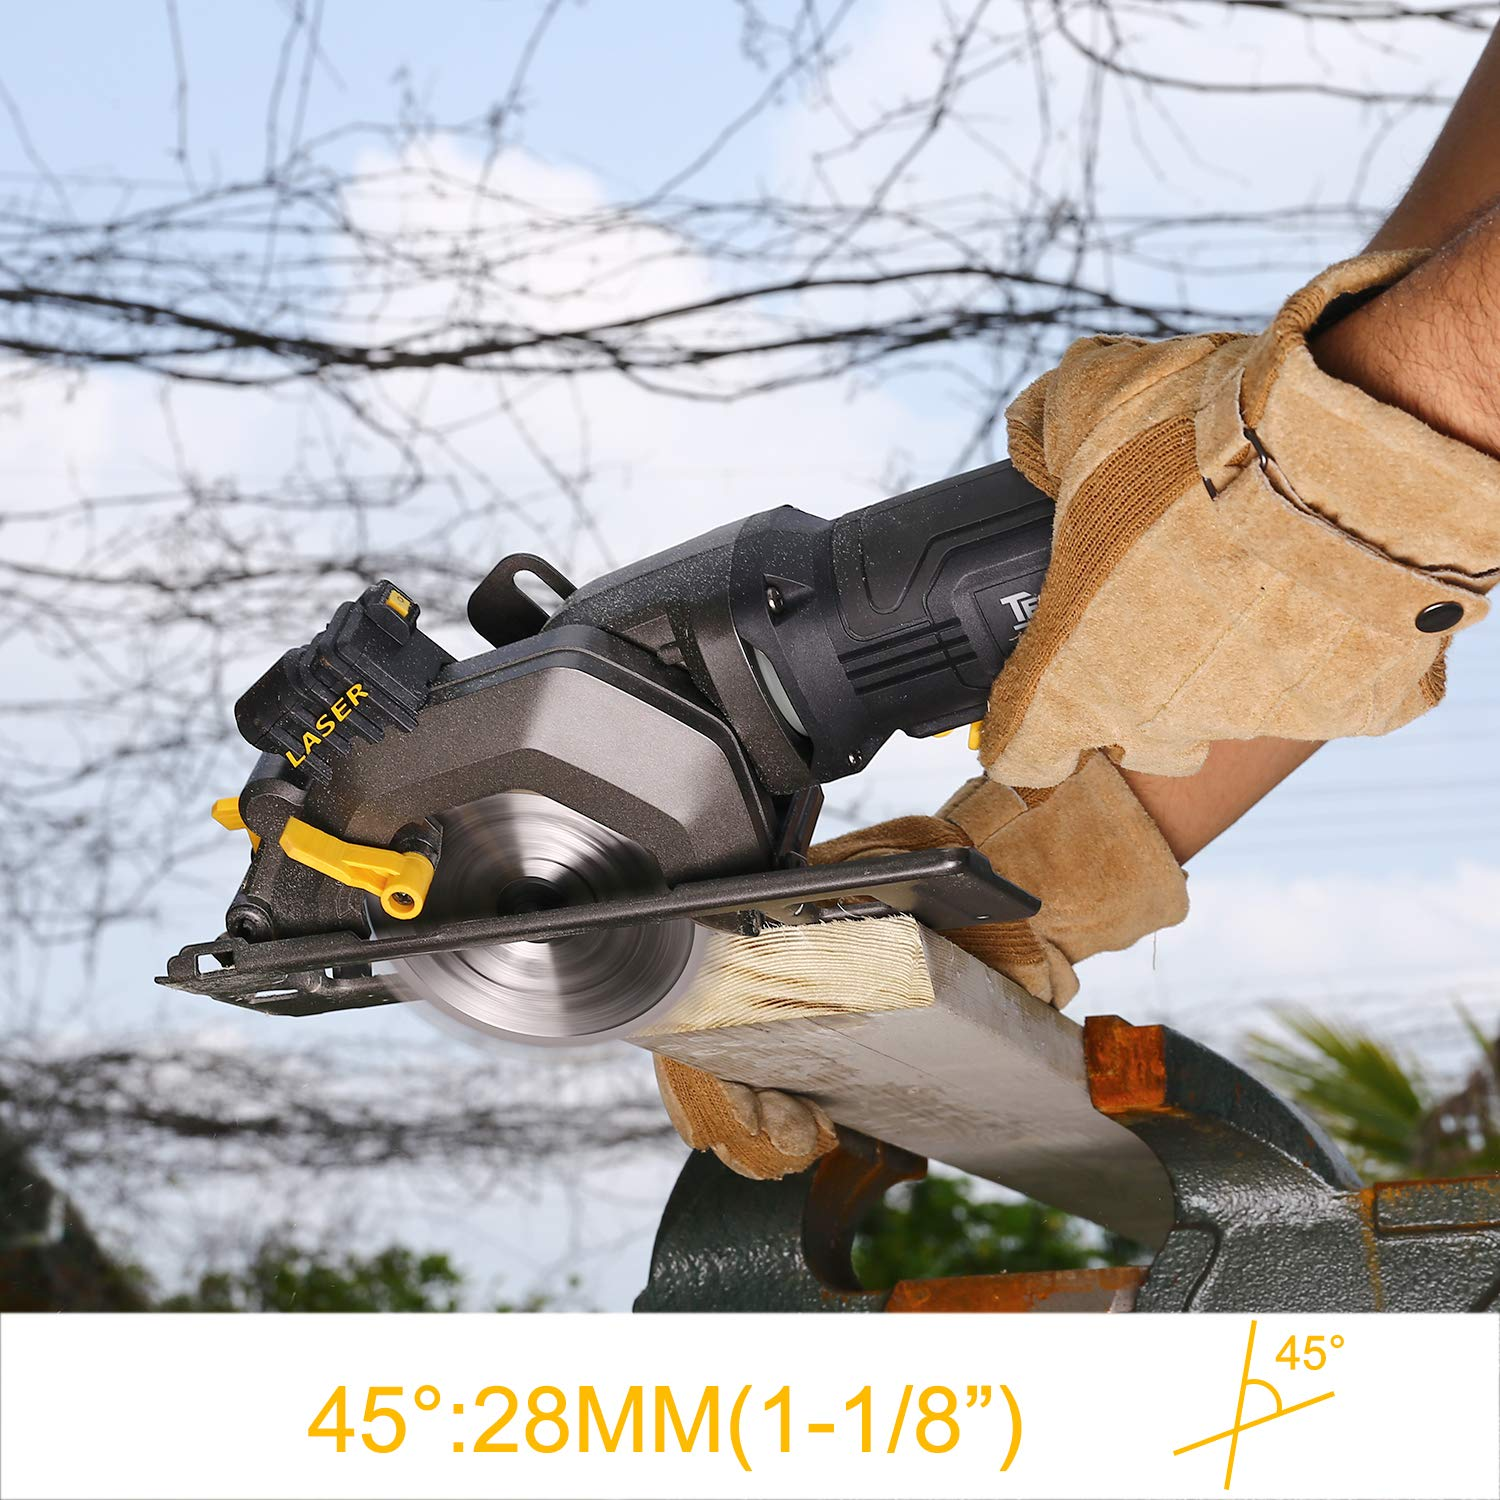 Mini Circular Saw The Best Choice for Cutting Wood. -TAMS24P Convenient and Simple Speed 3500 RPM TECCPO 480W Blade Diameter 115 mm Pure Copper Wire Motor with Laser Light